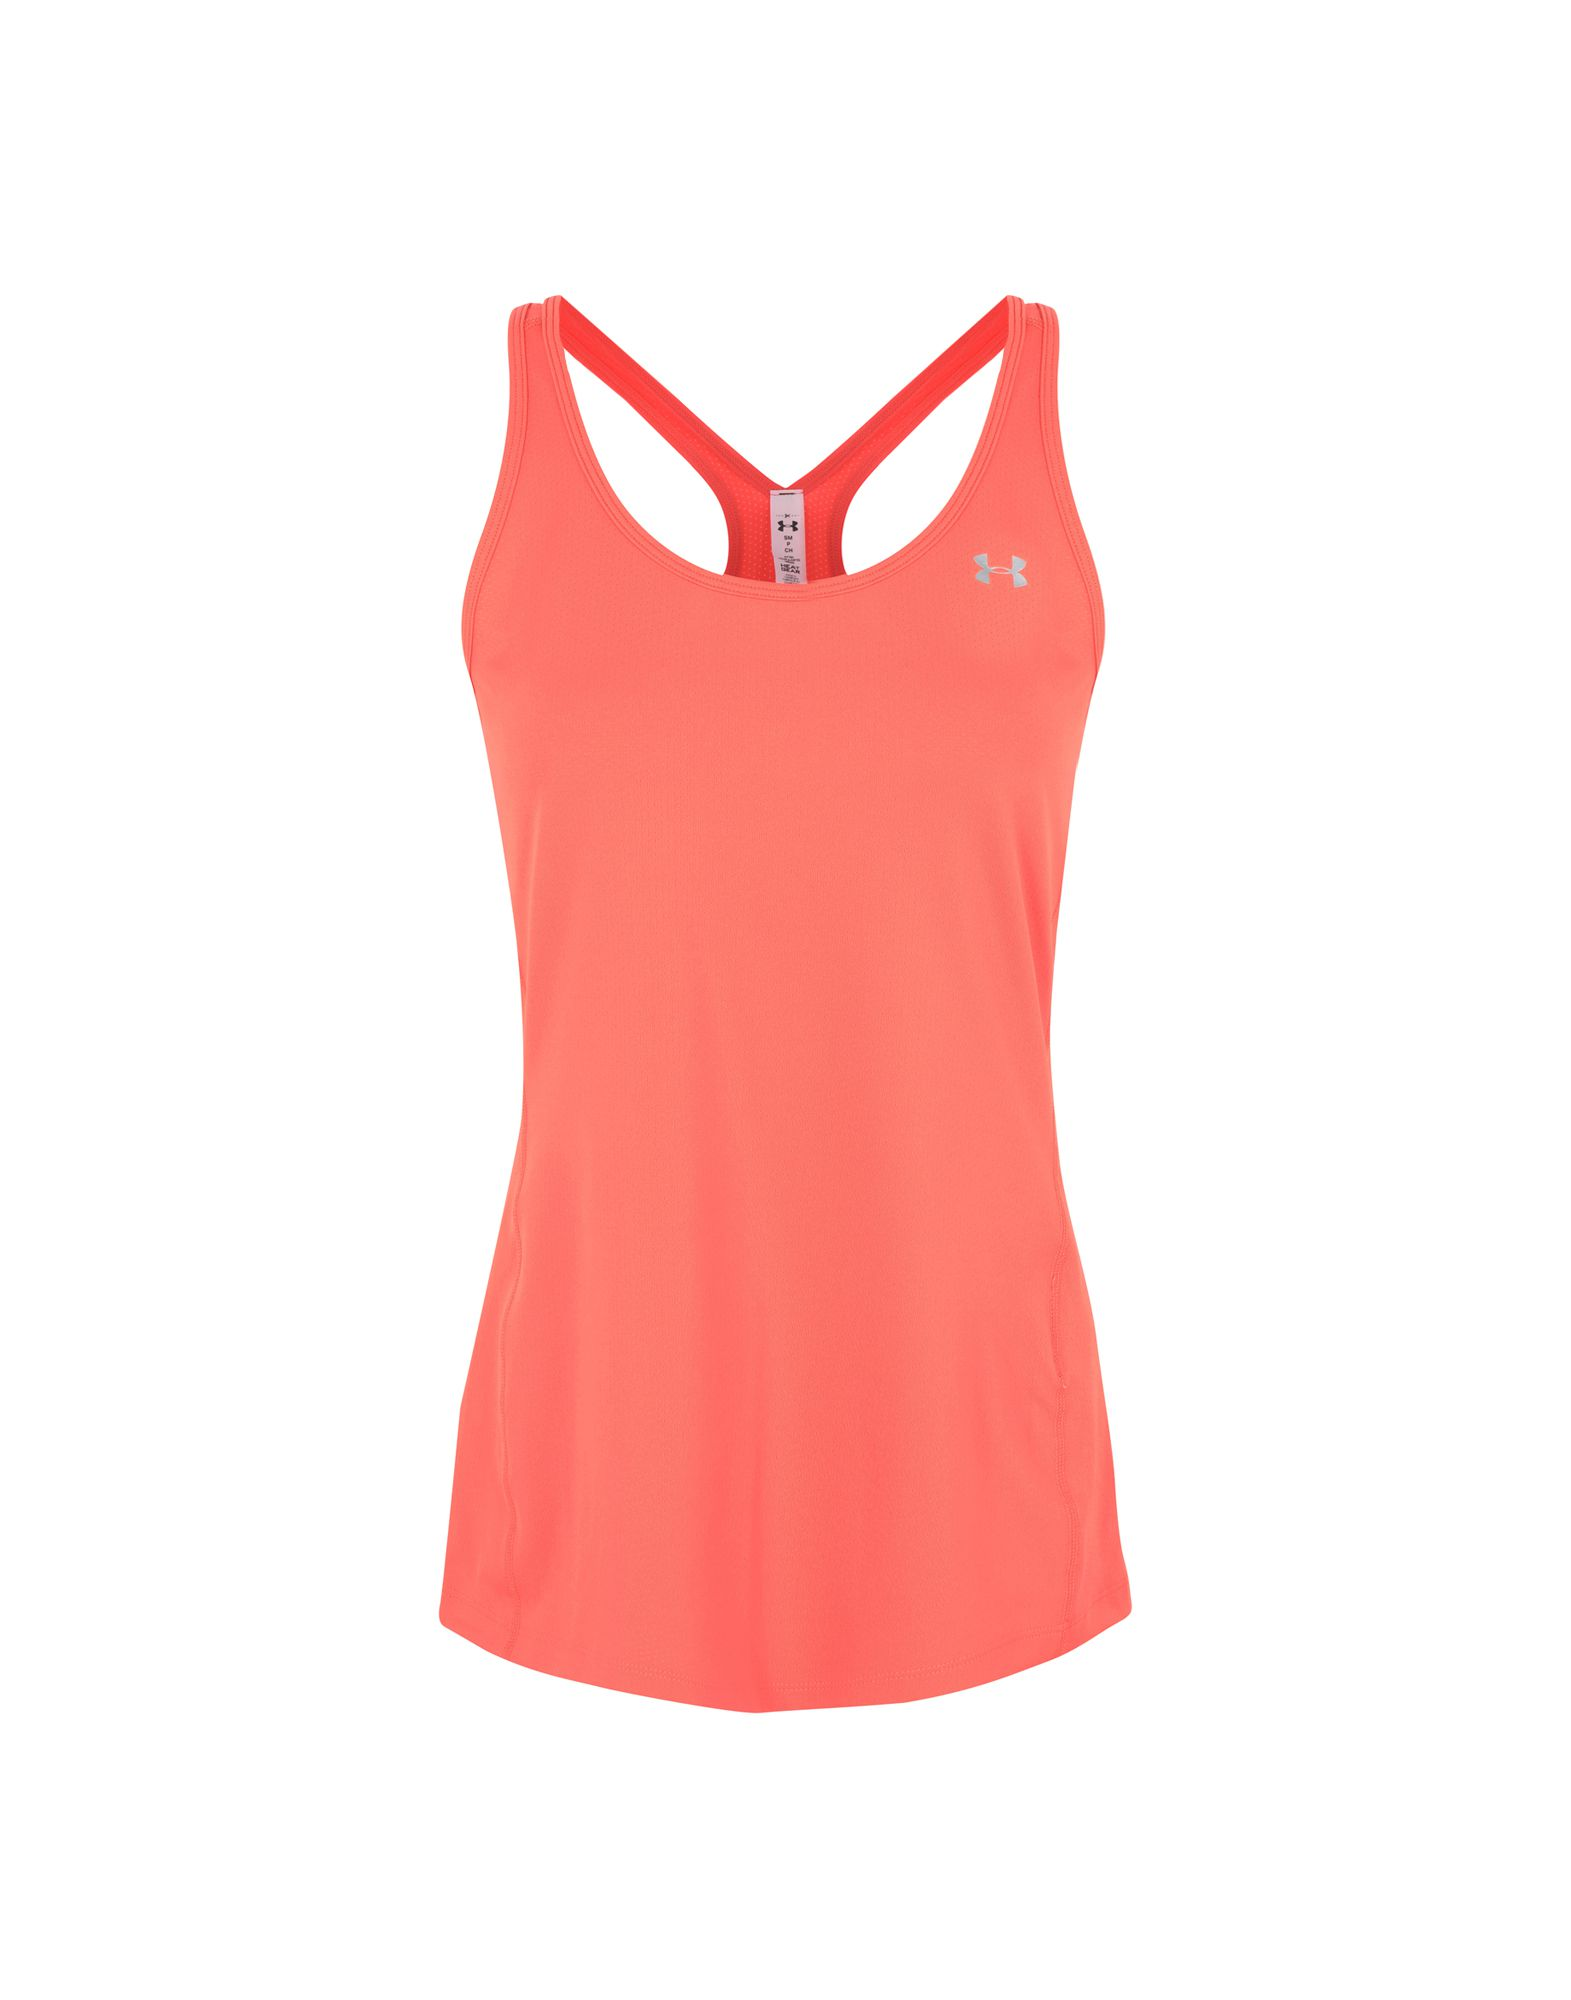 UNDER ARMOUR Топ без рукавов available from 10 11 under armour running vest 1271822 789